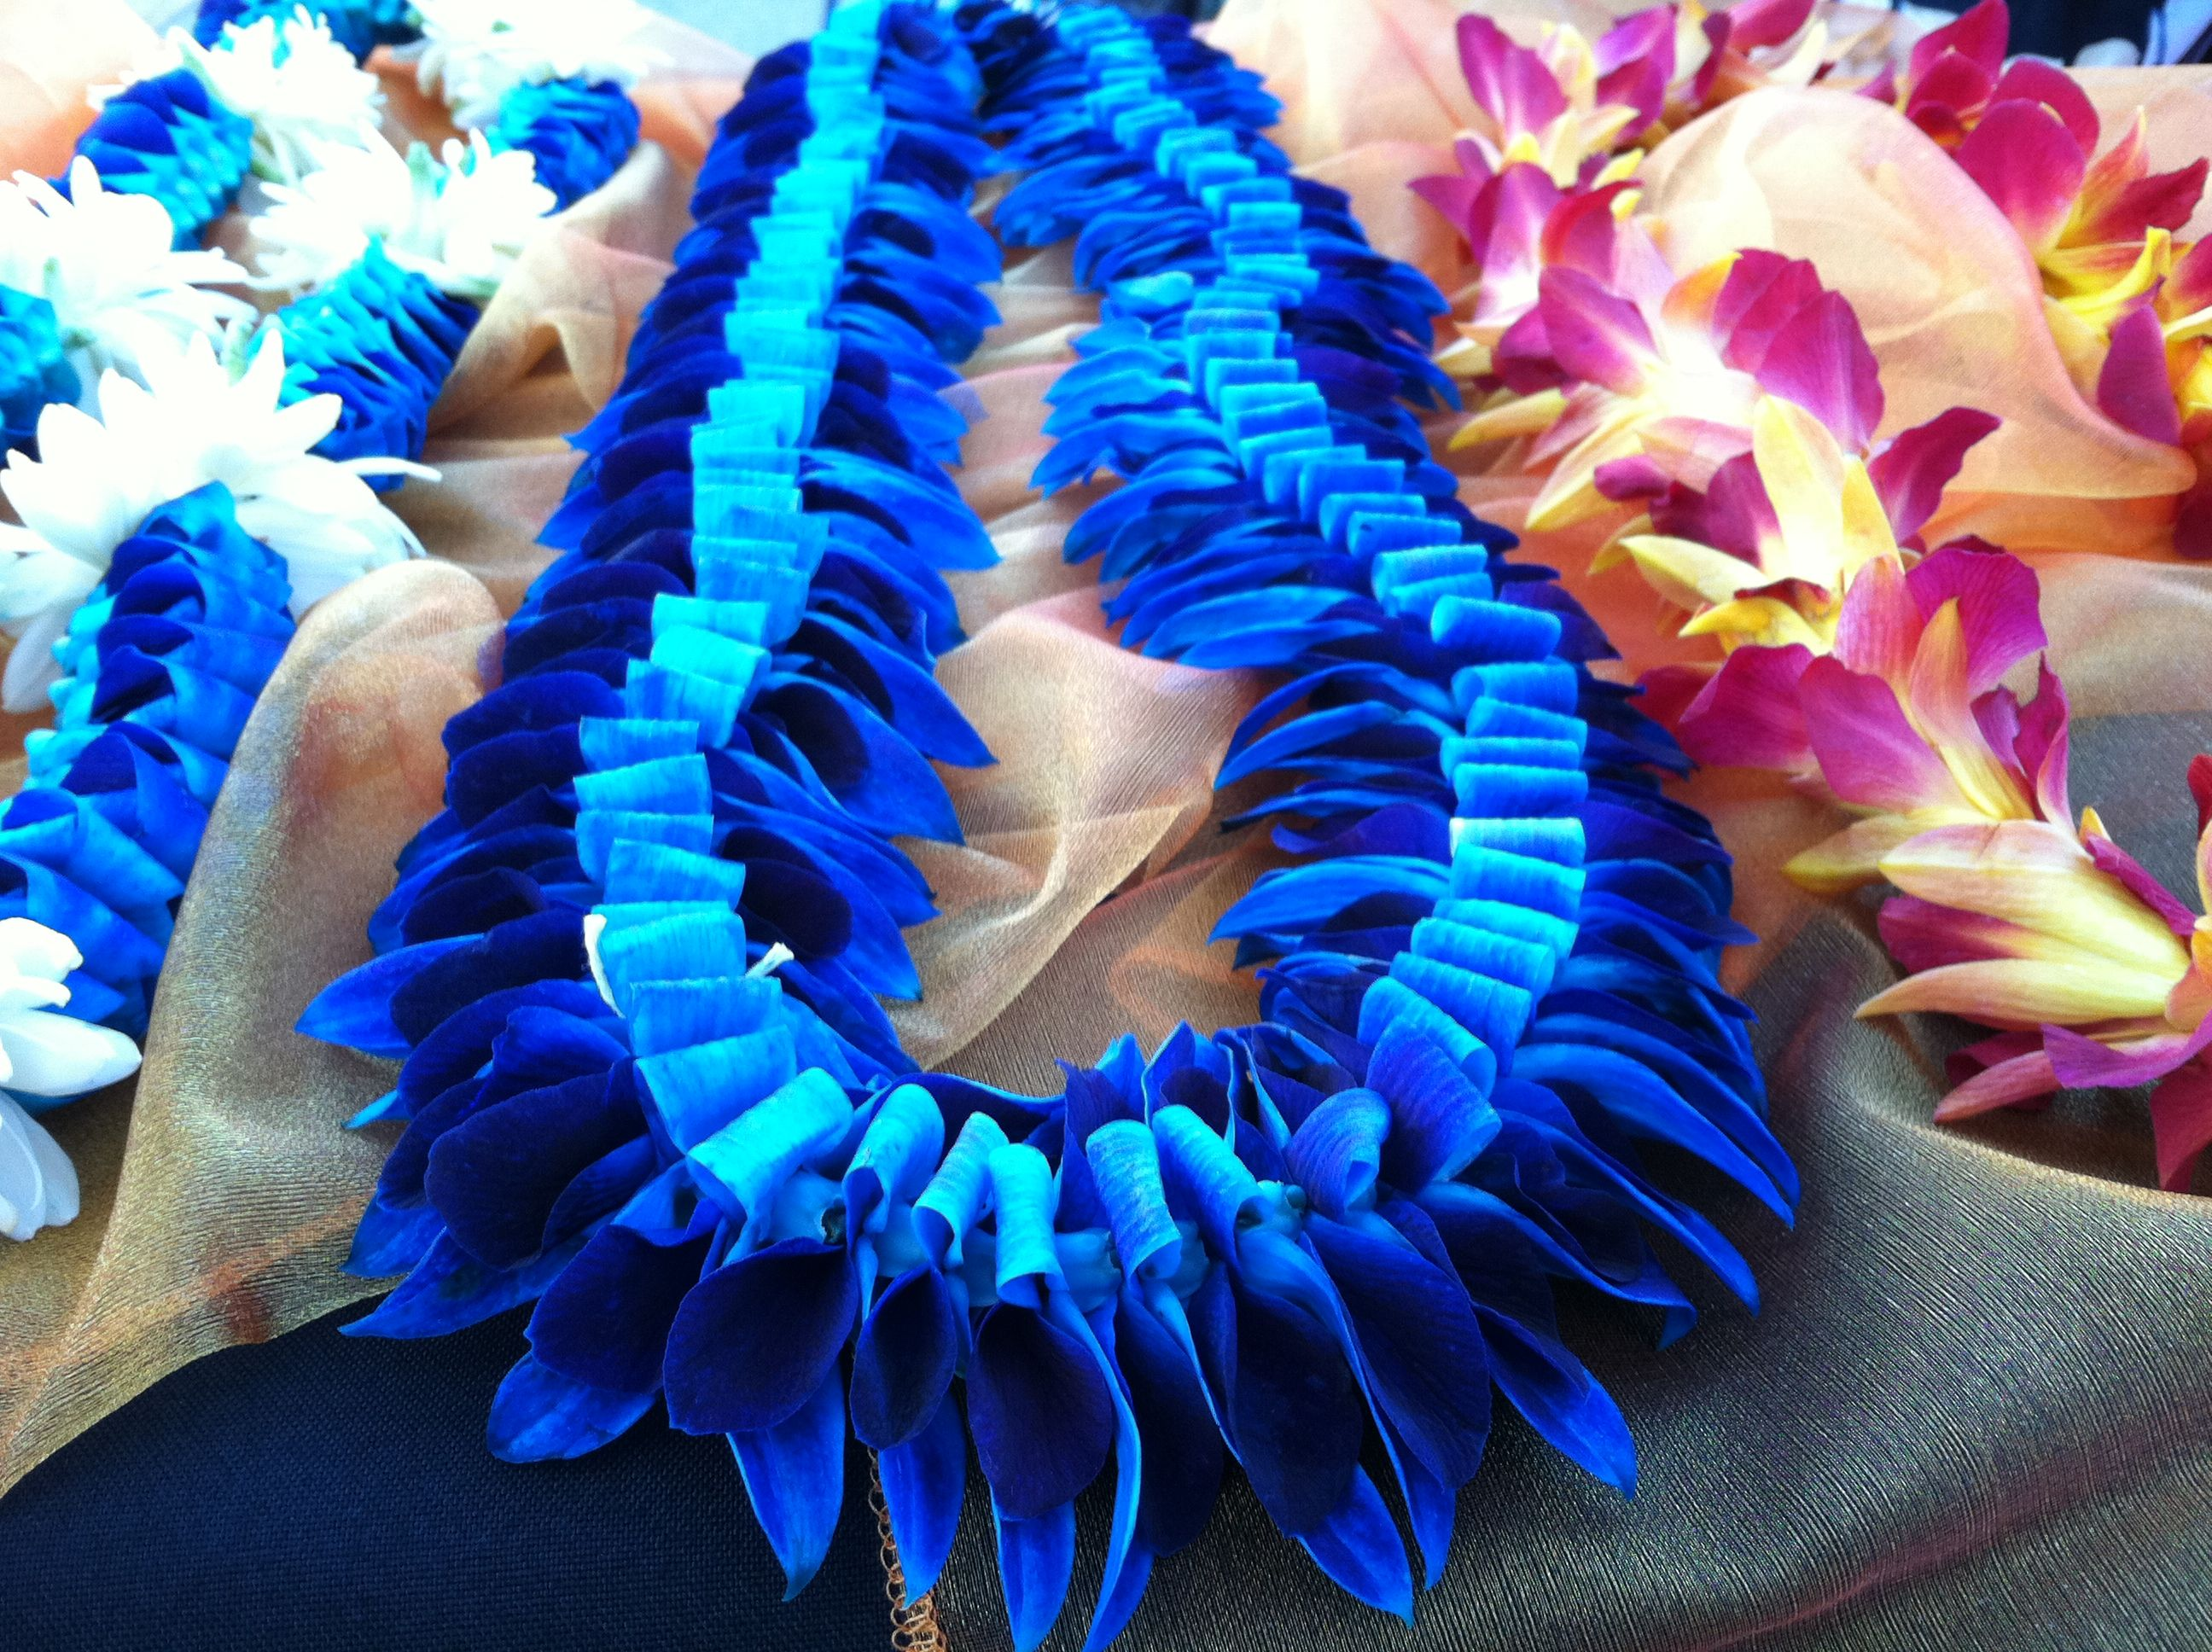 Specialty Blue Orchid Lei Cost 45 Orchid Lei Blue Orchids Kanzashi Flowers